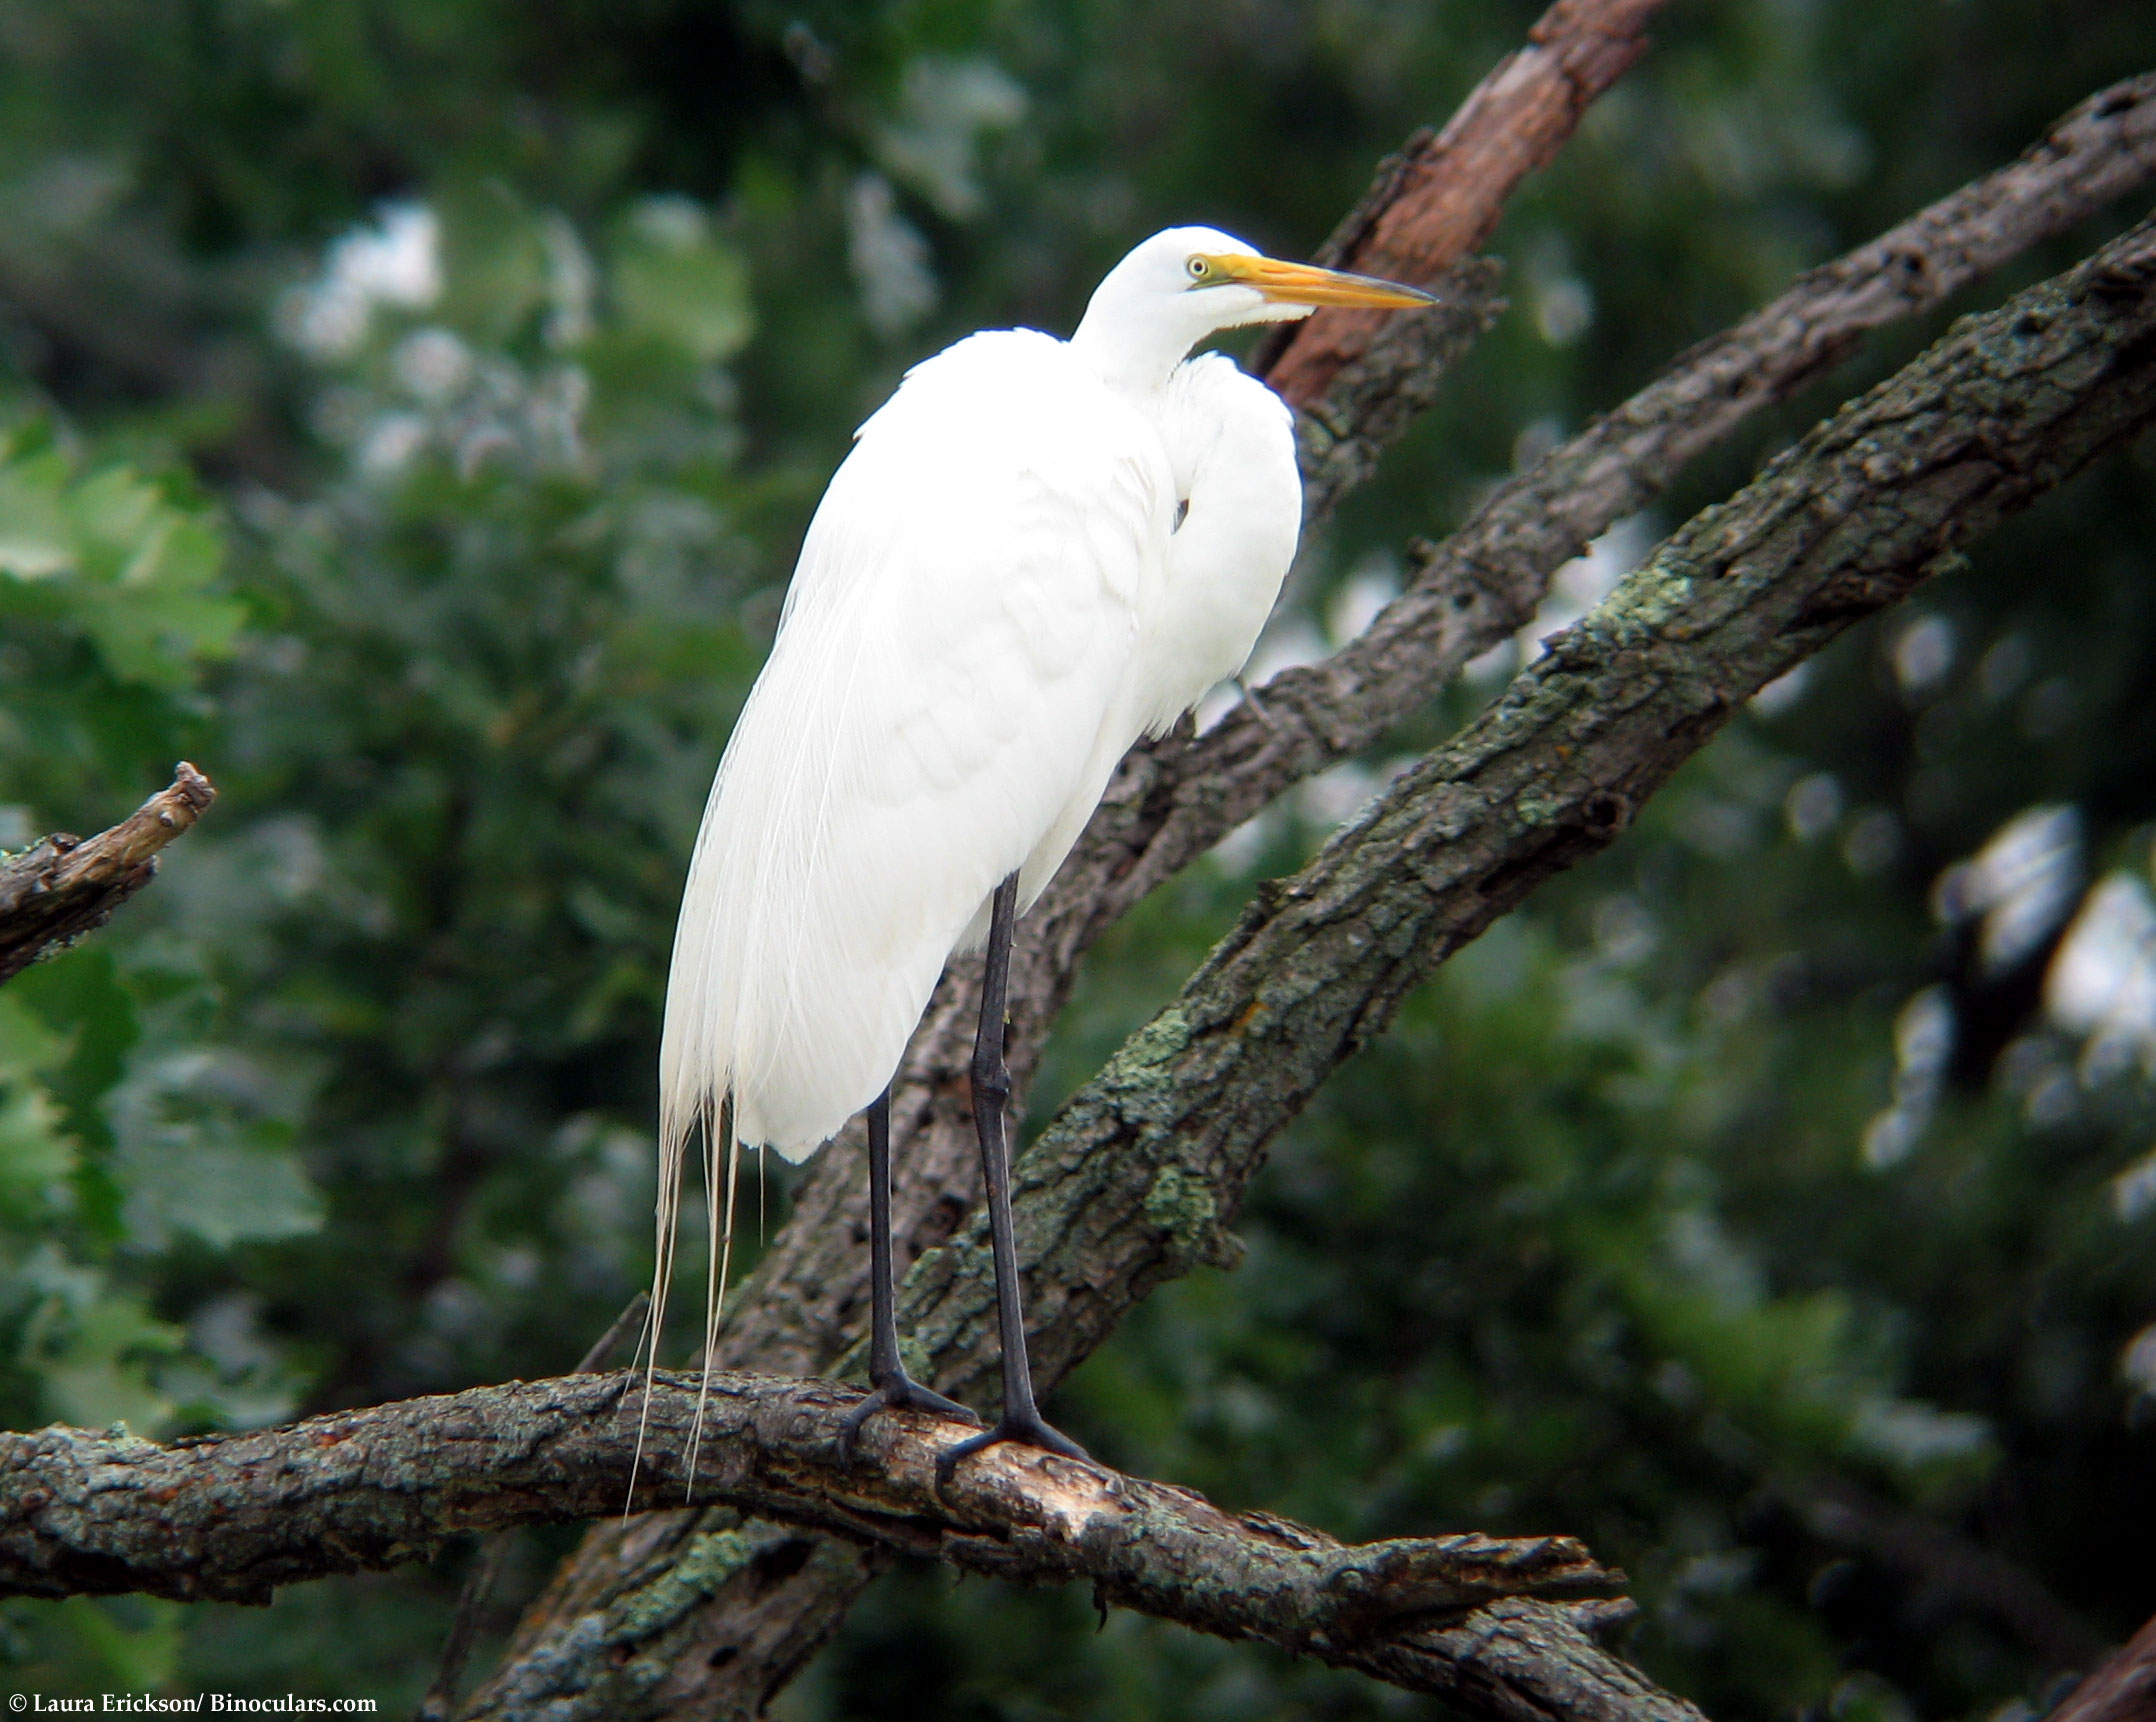 Laura's Great Egret pictures